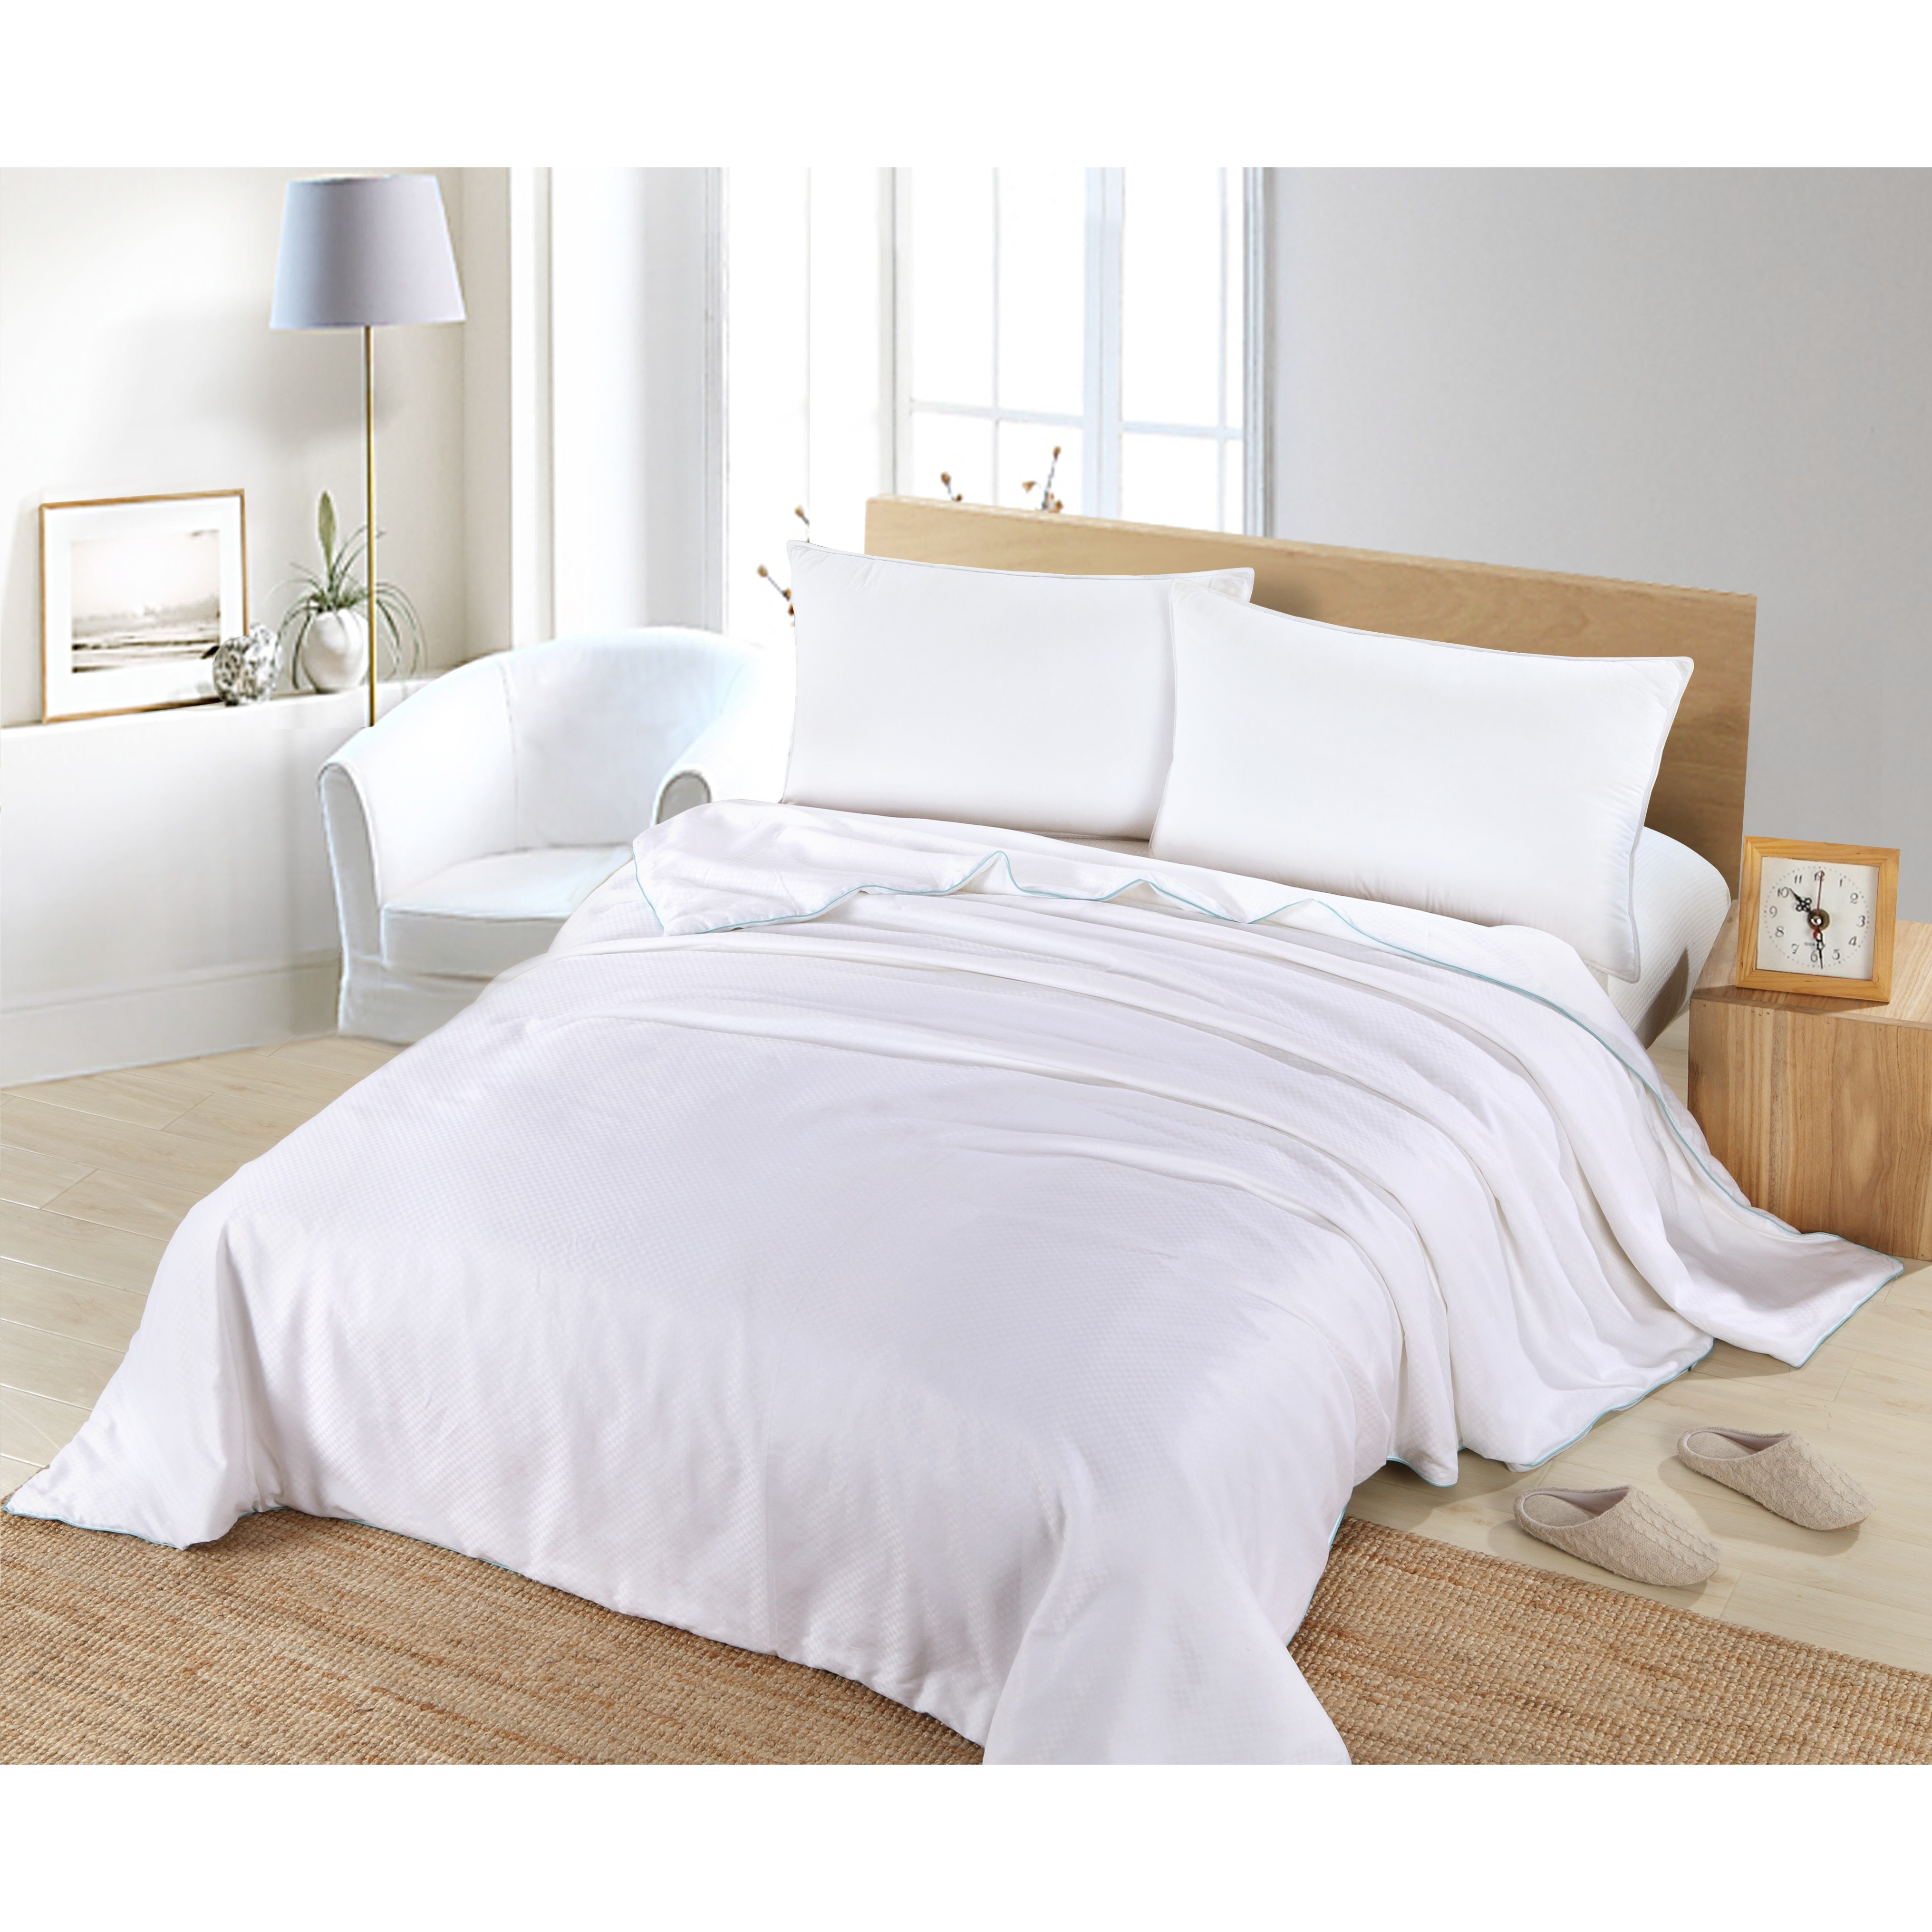 vio mulberry luxurious bedding aus cotton free today comforter silk overstock shipping product bath